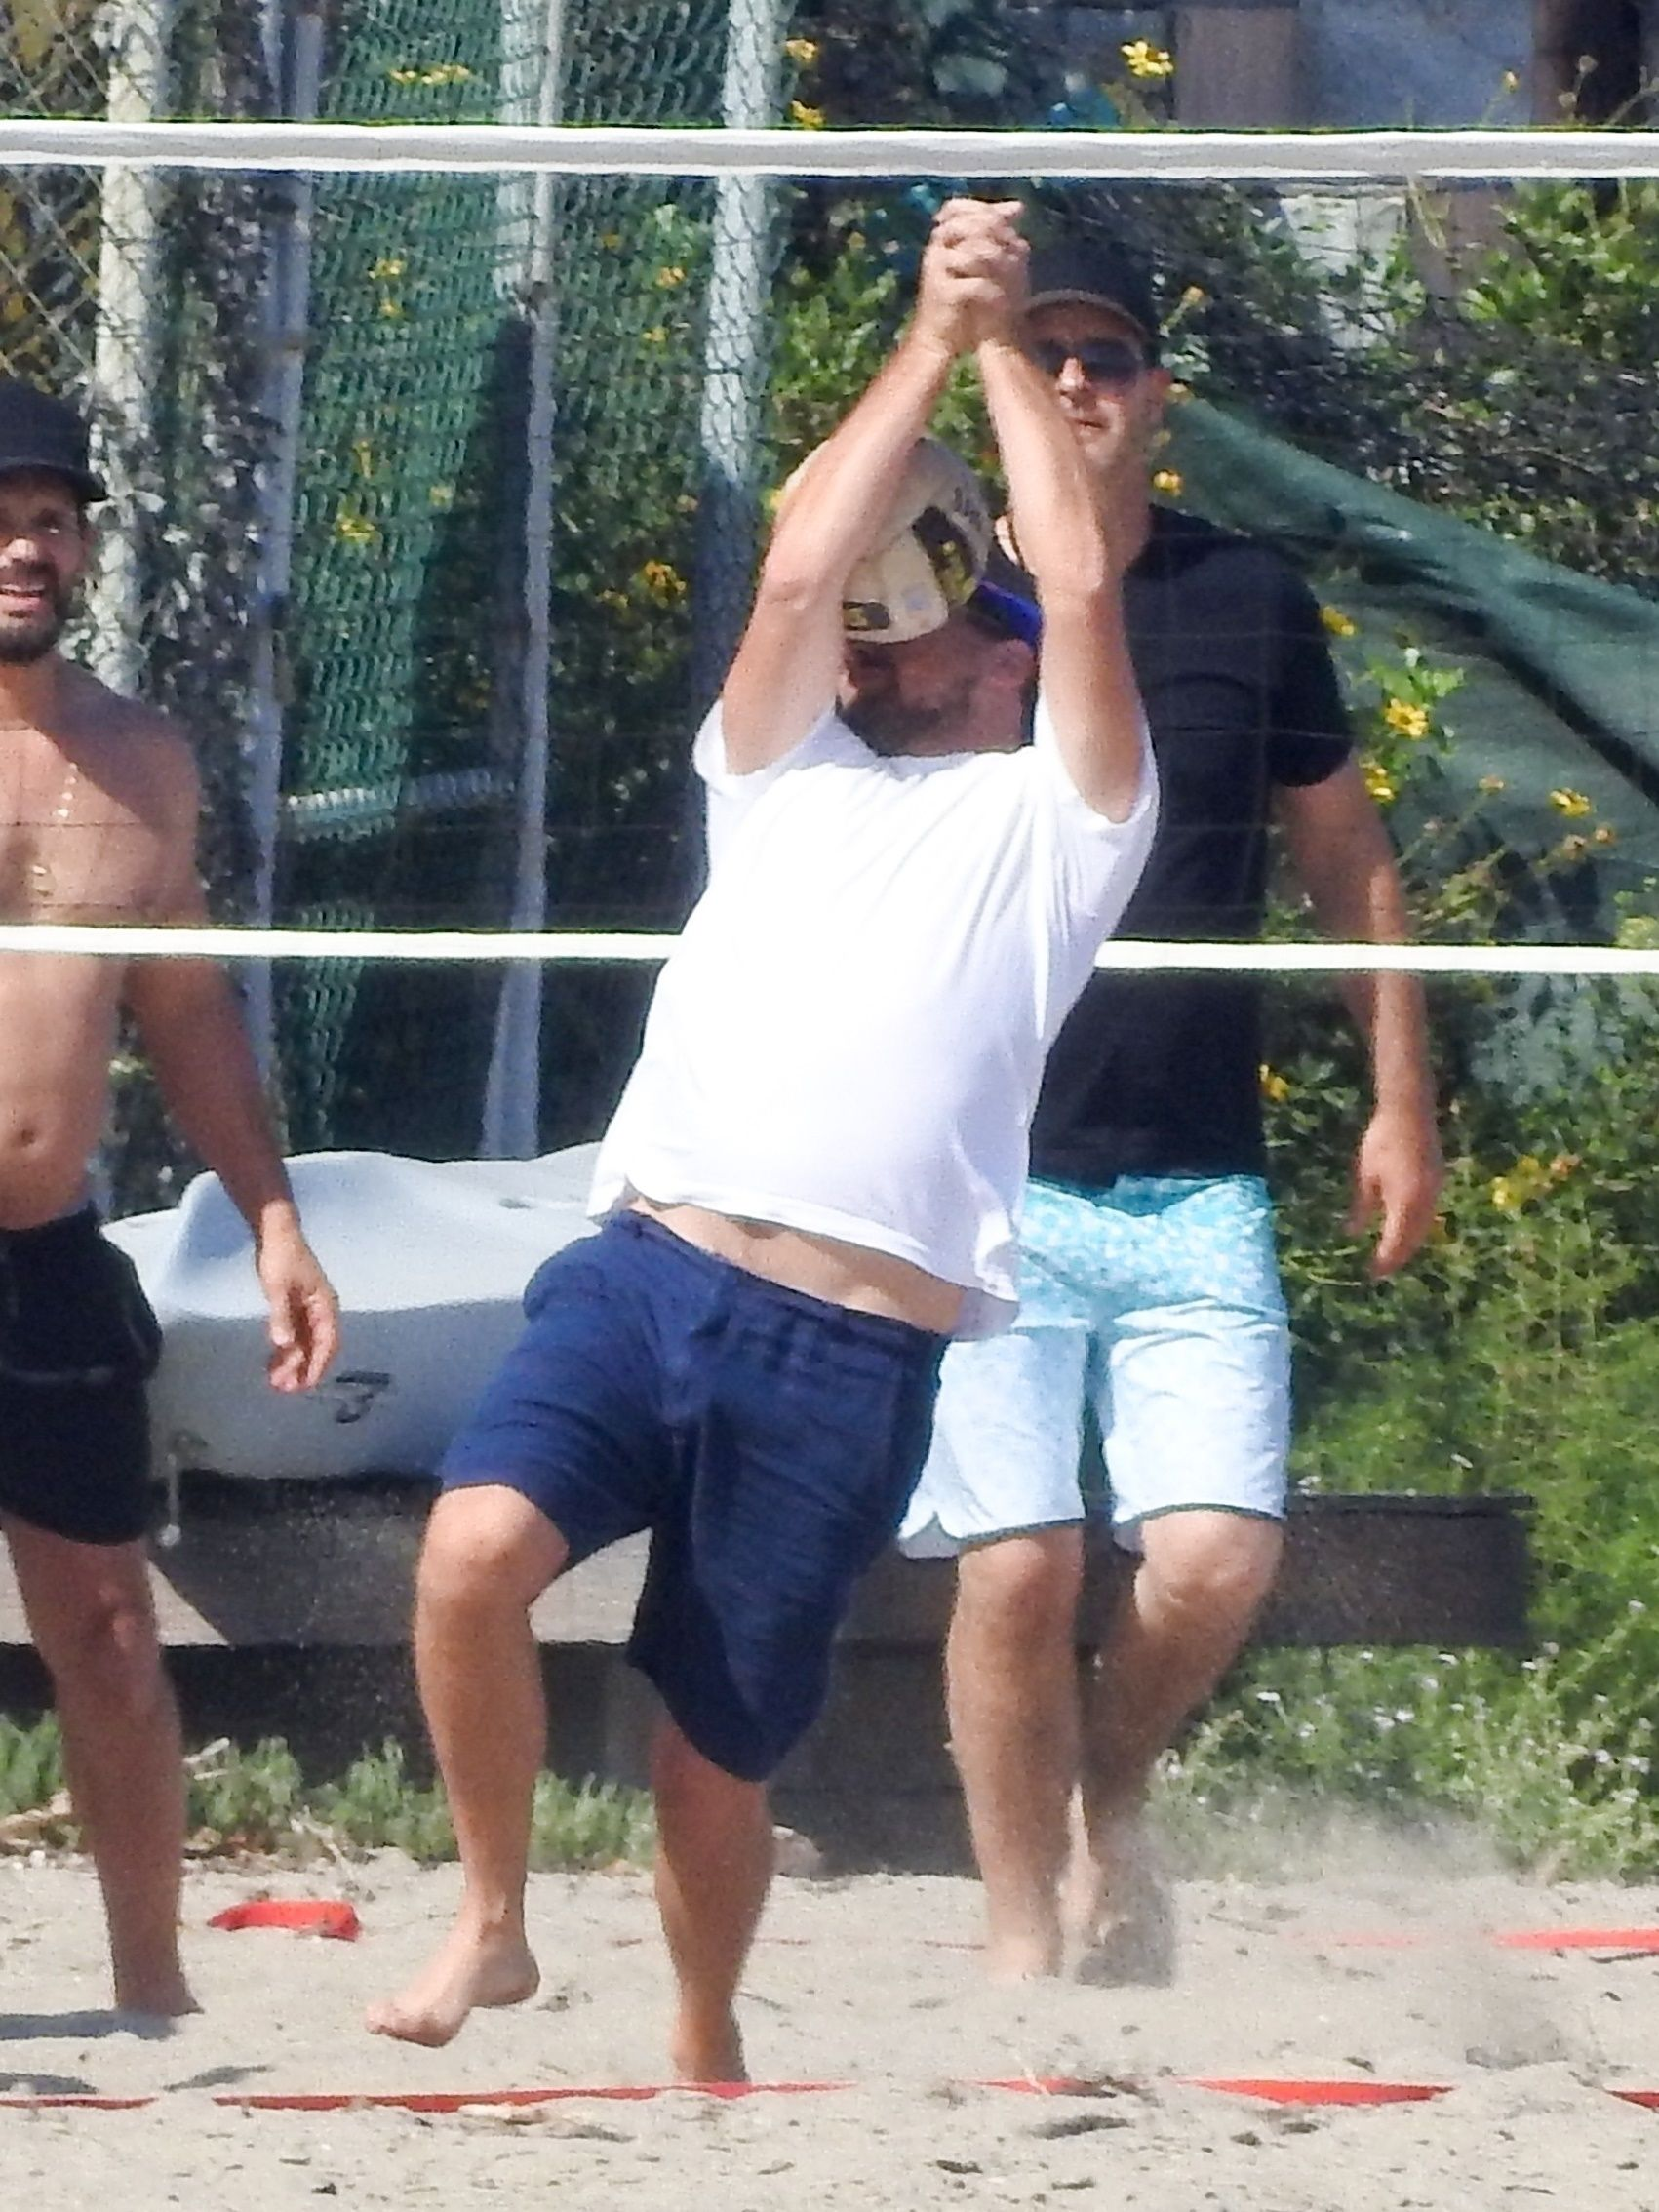 This Volleyball That Hit Leonardo DiCaprio's Face Should Go to Jail